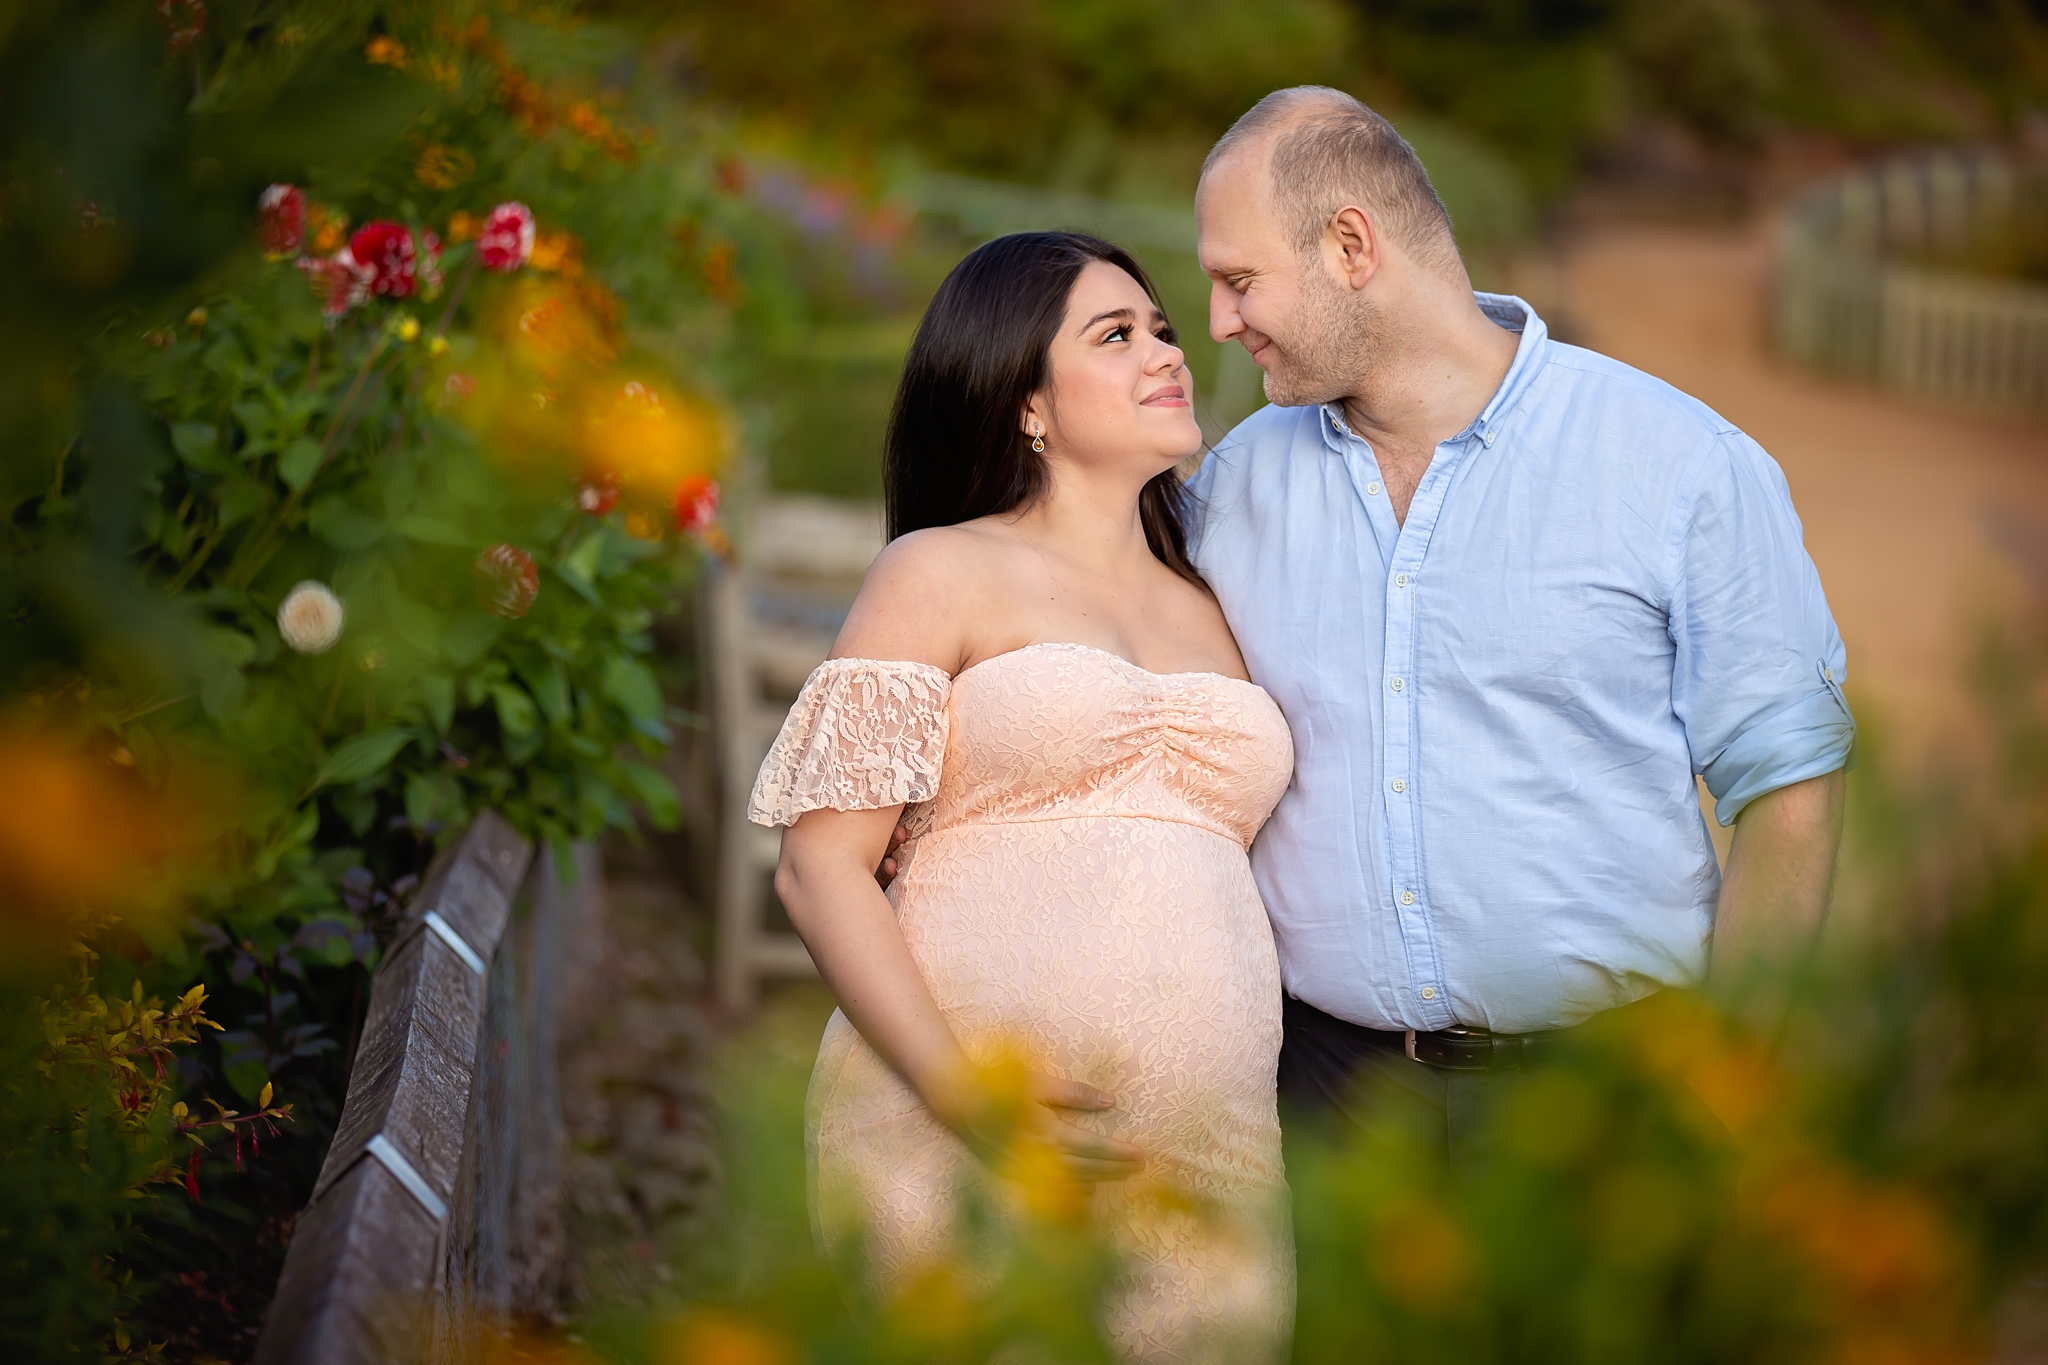 Summer maternity photography Leeds, Bradford, York, Harrogate, Wakefield: beautiful expecting couple posing for their maternity portrait in Leeds, West Yorkshire.